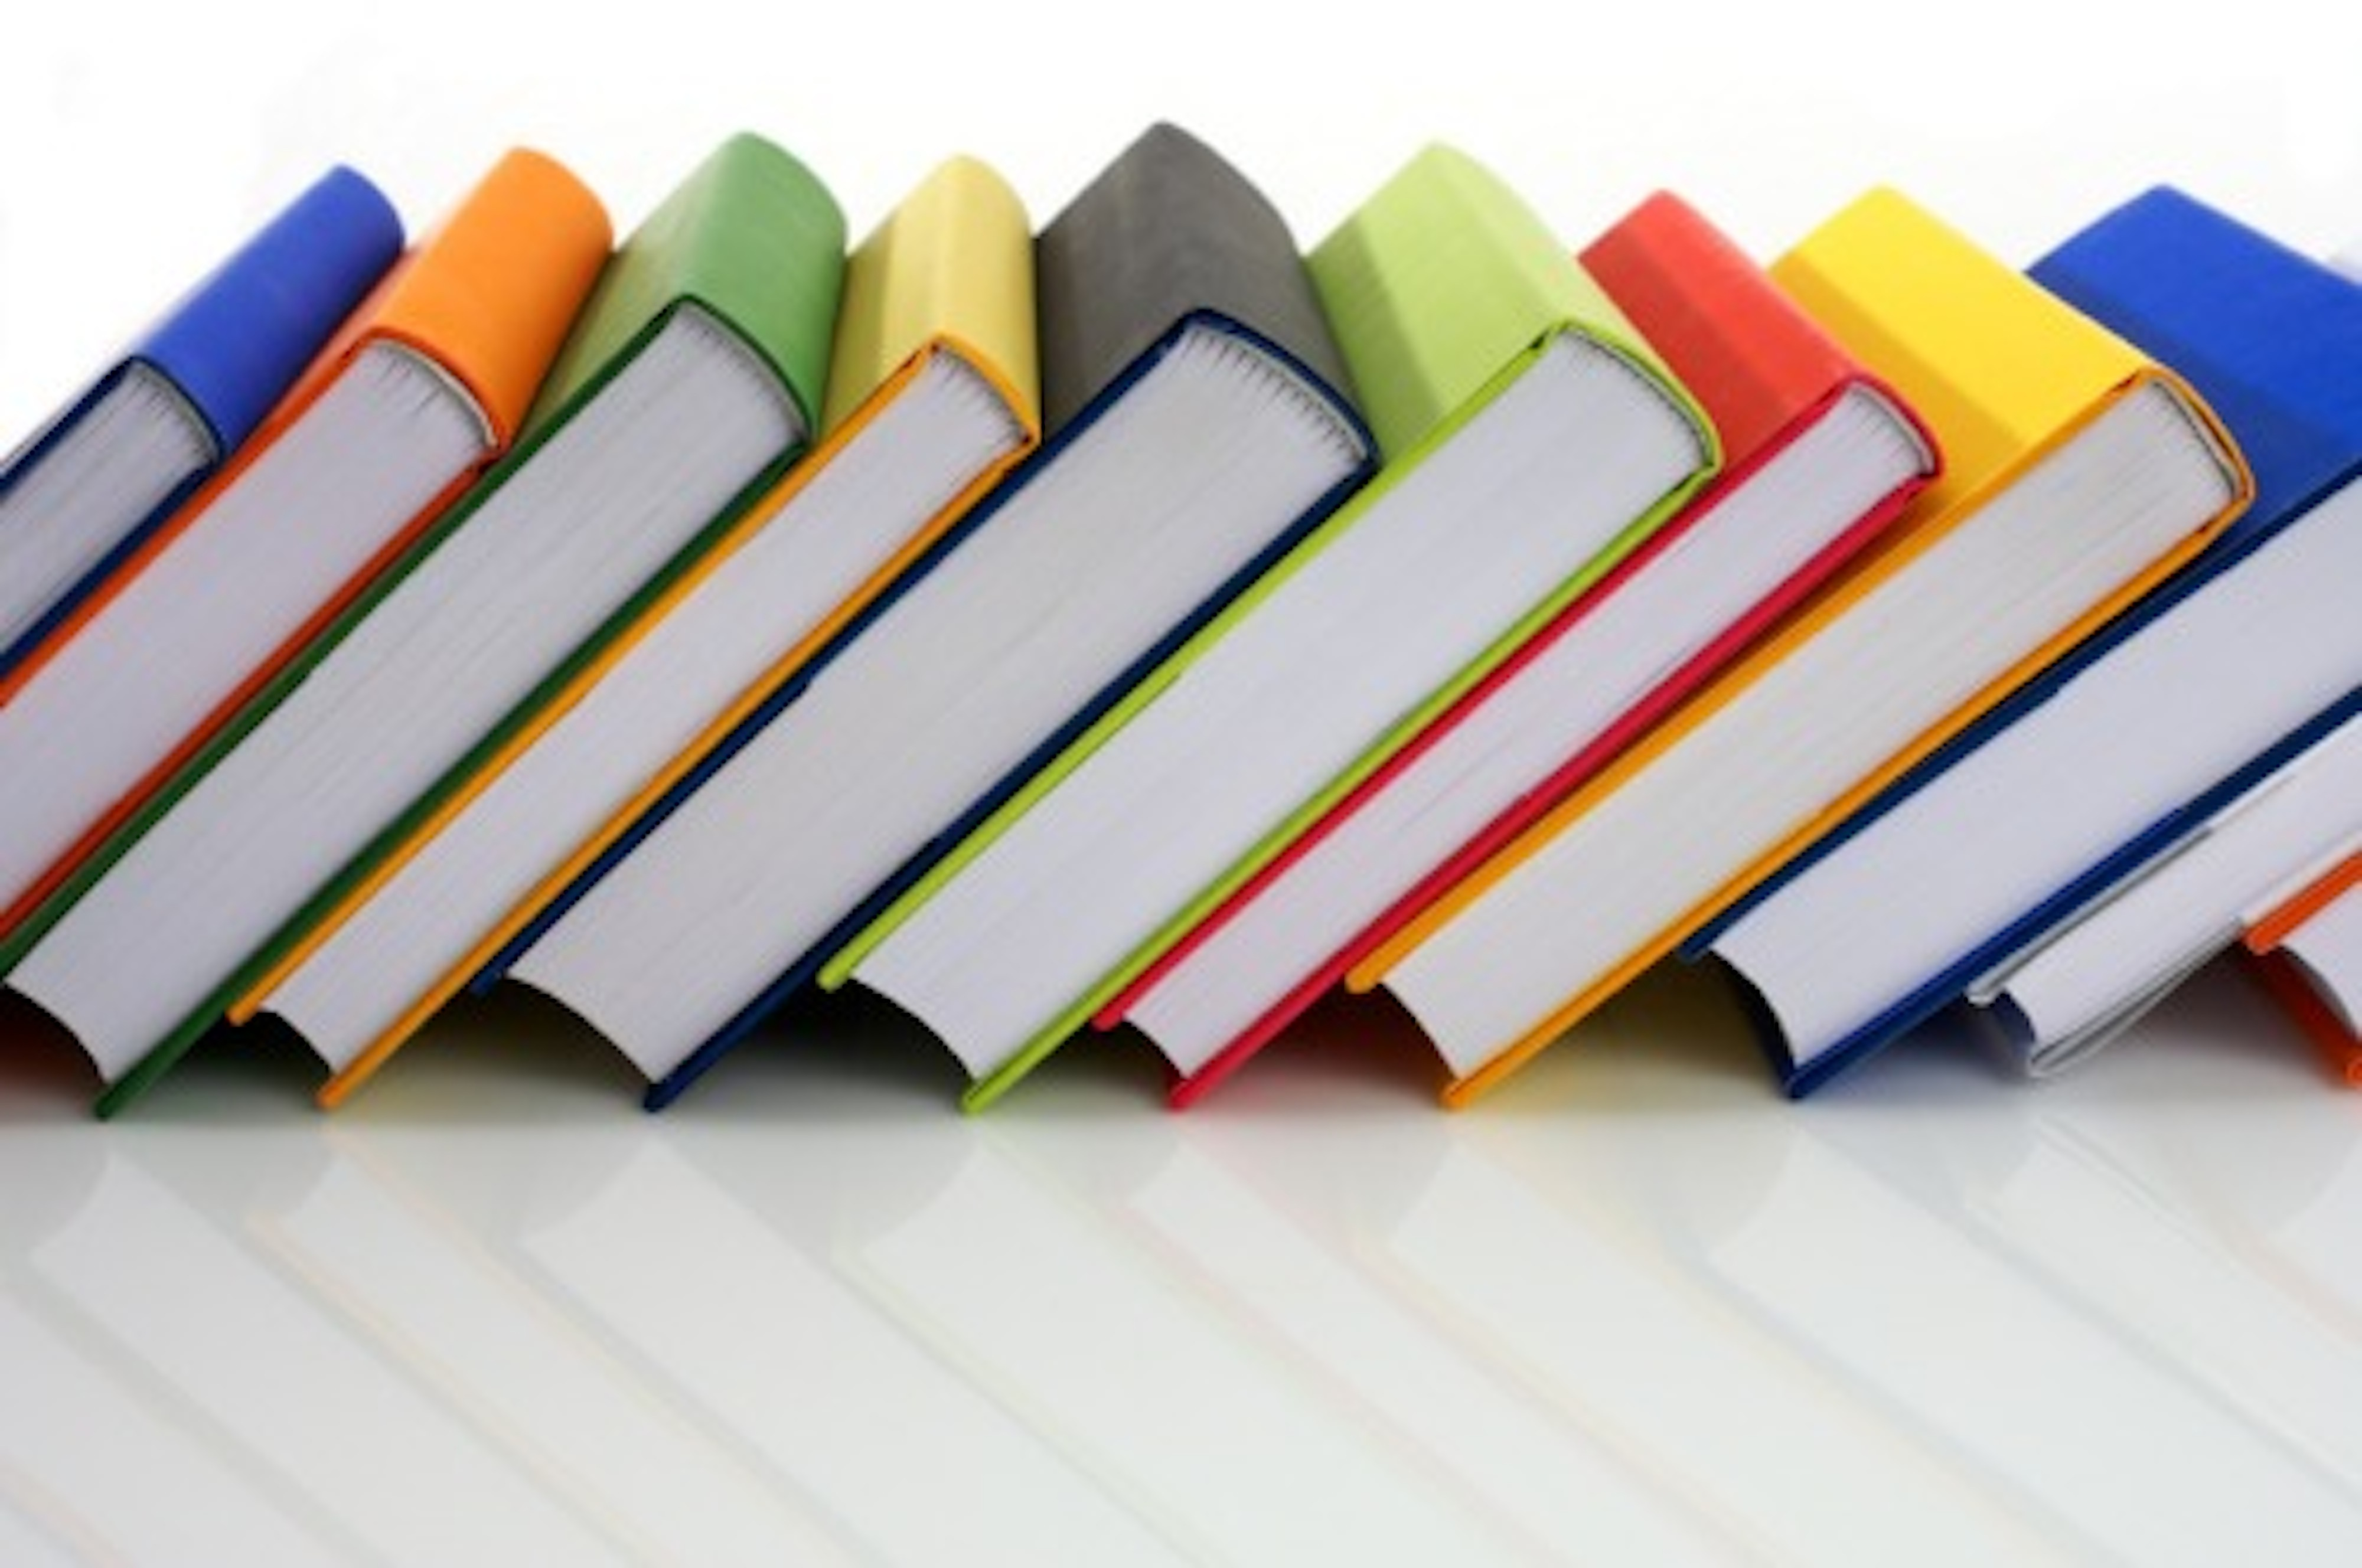 100 Books You May Have Actually Read - How many have you read?